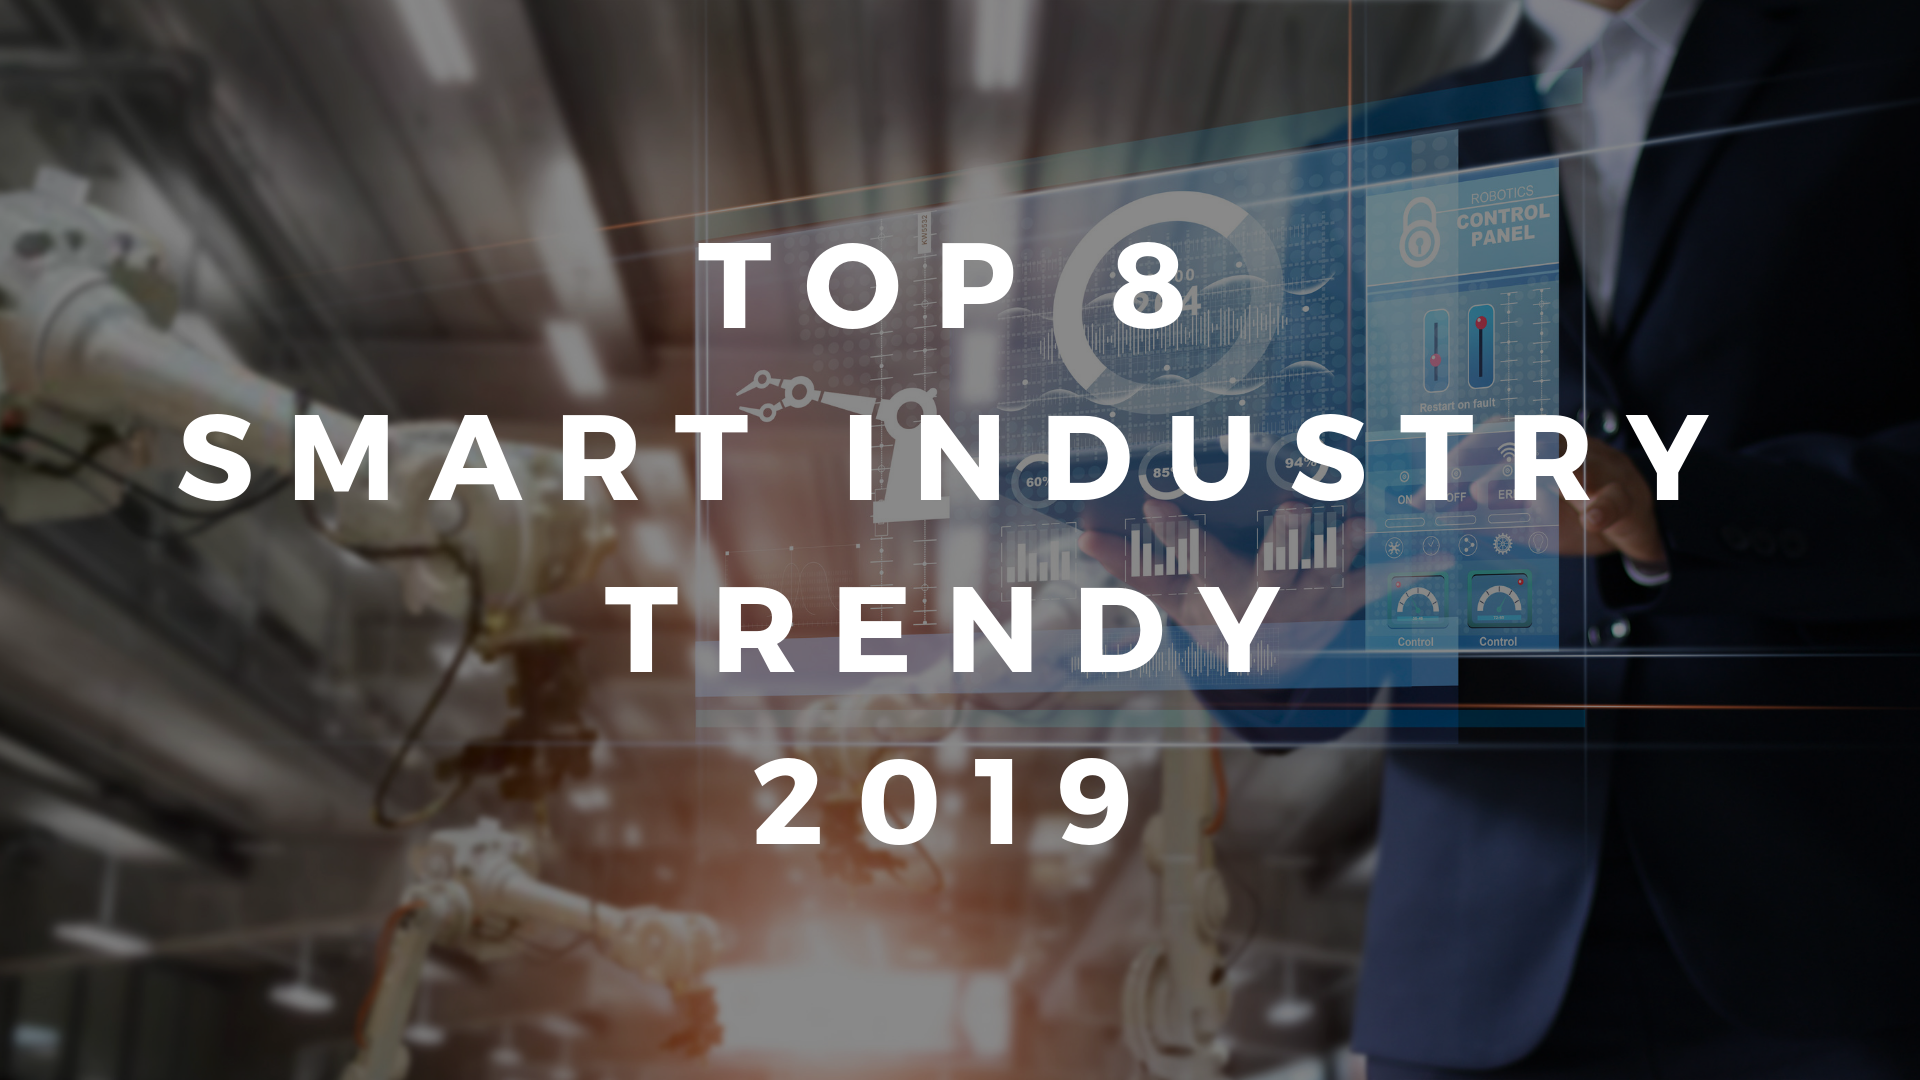 Top Smart Industry Trendy 2019 banner